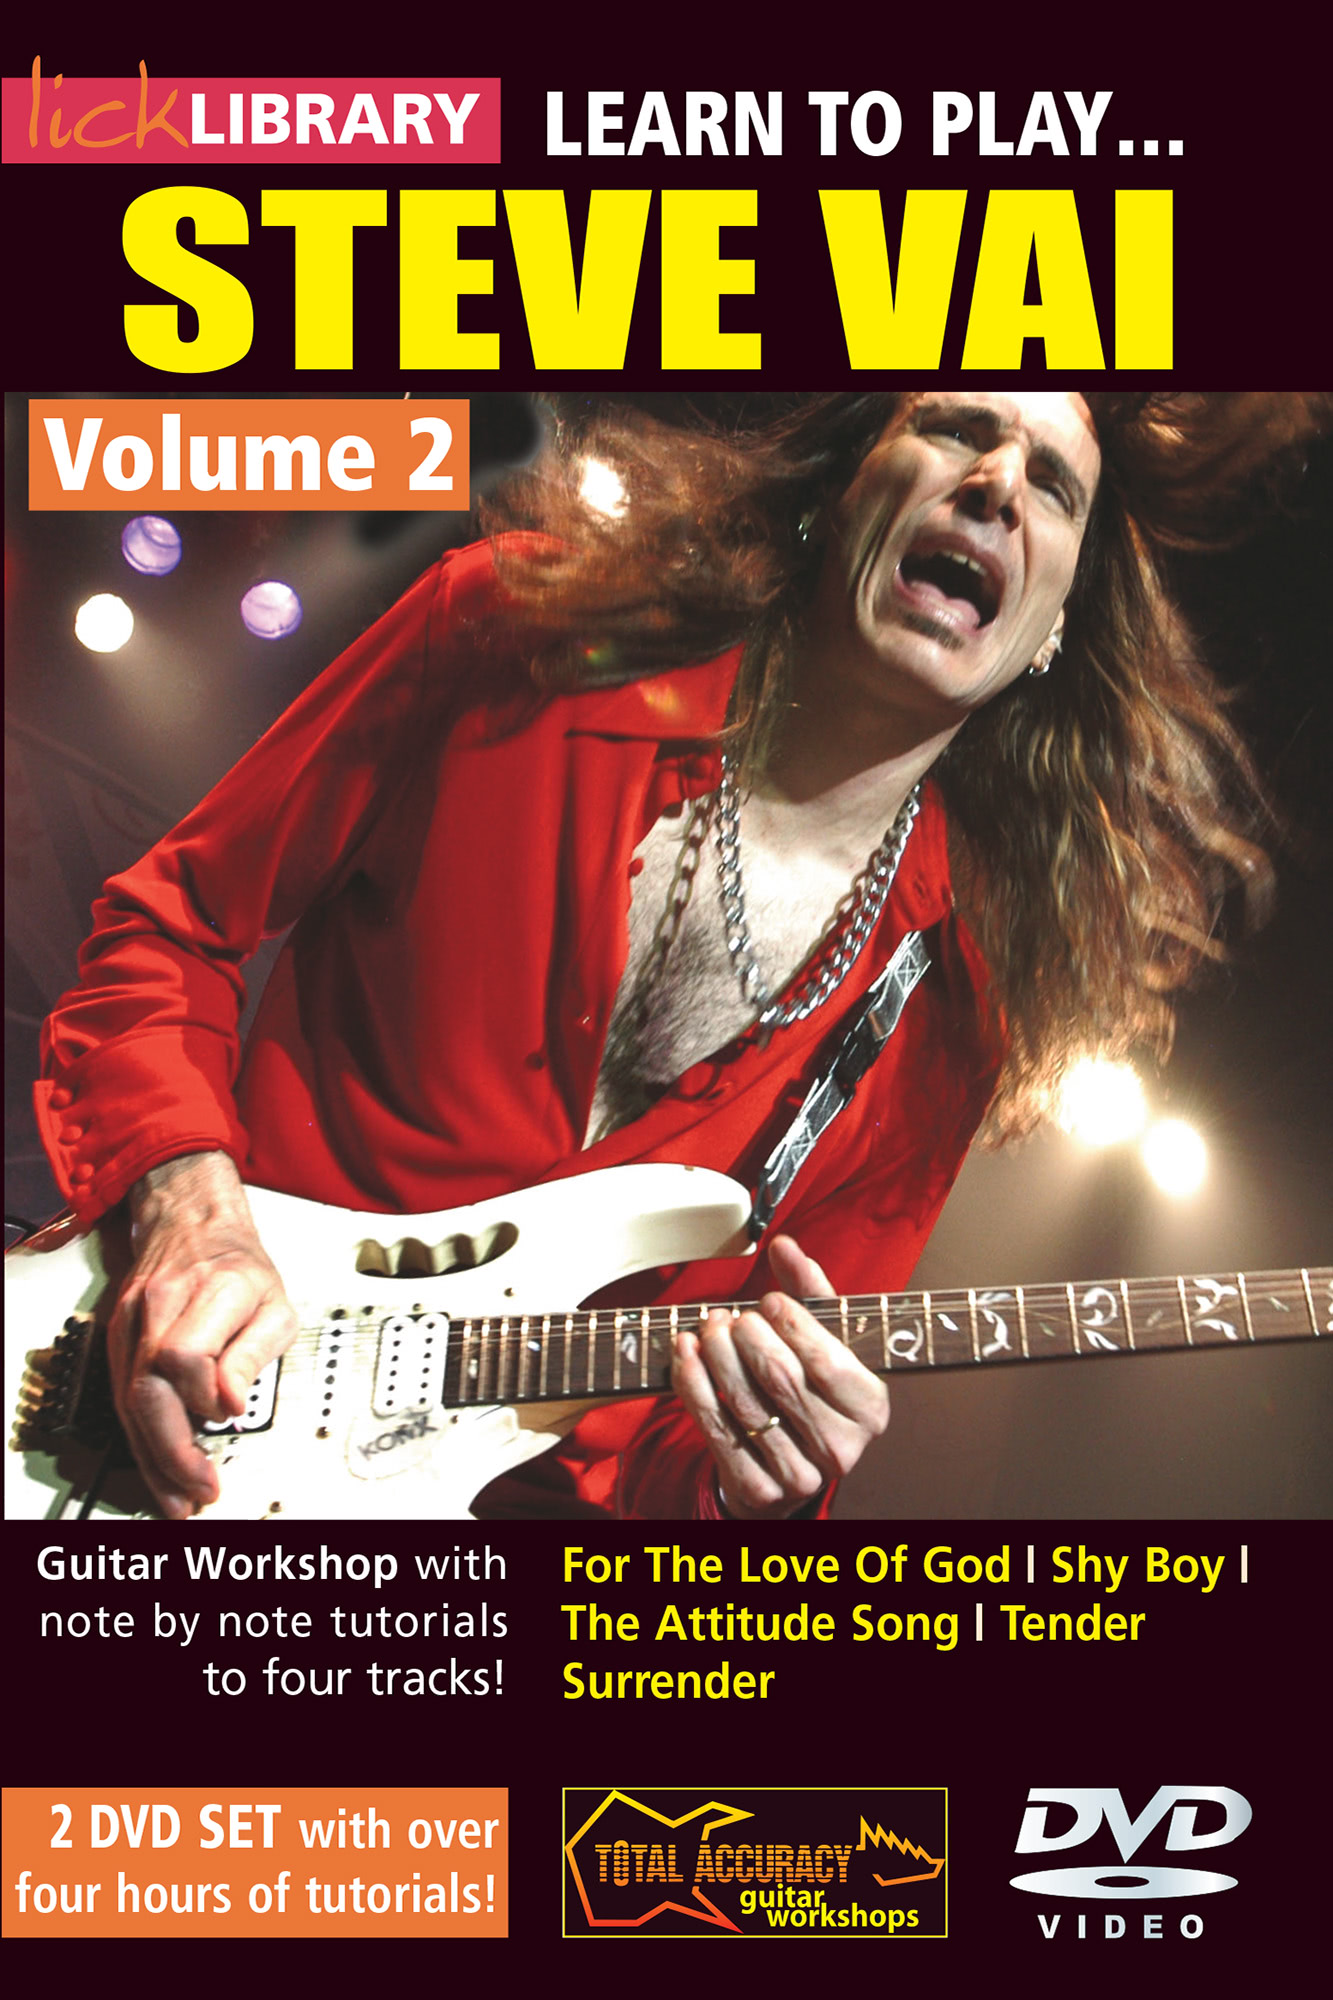 Learn To Play Steve Vai Volume 2